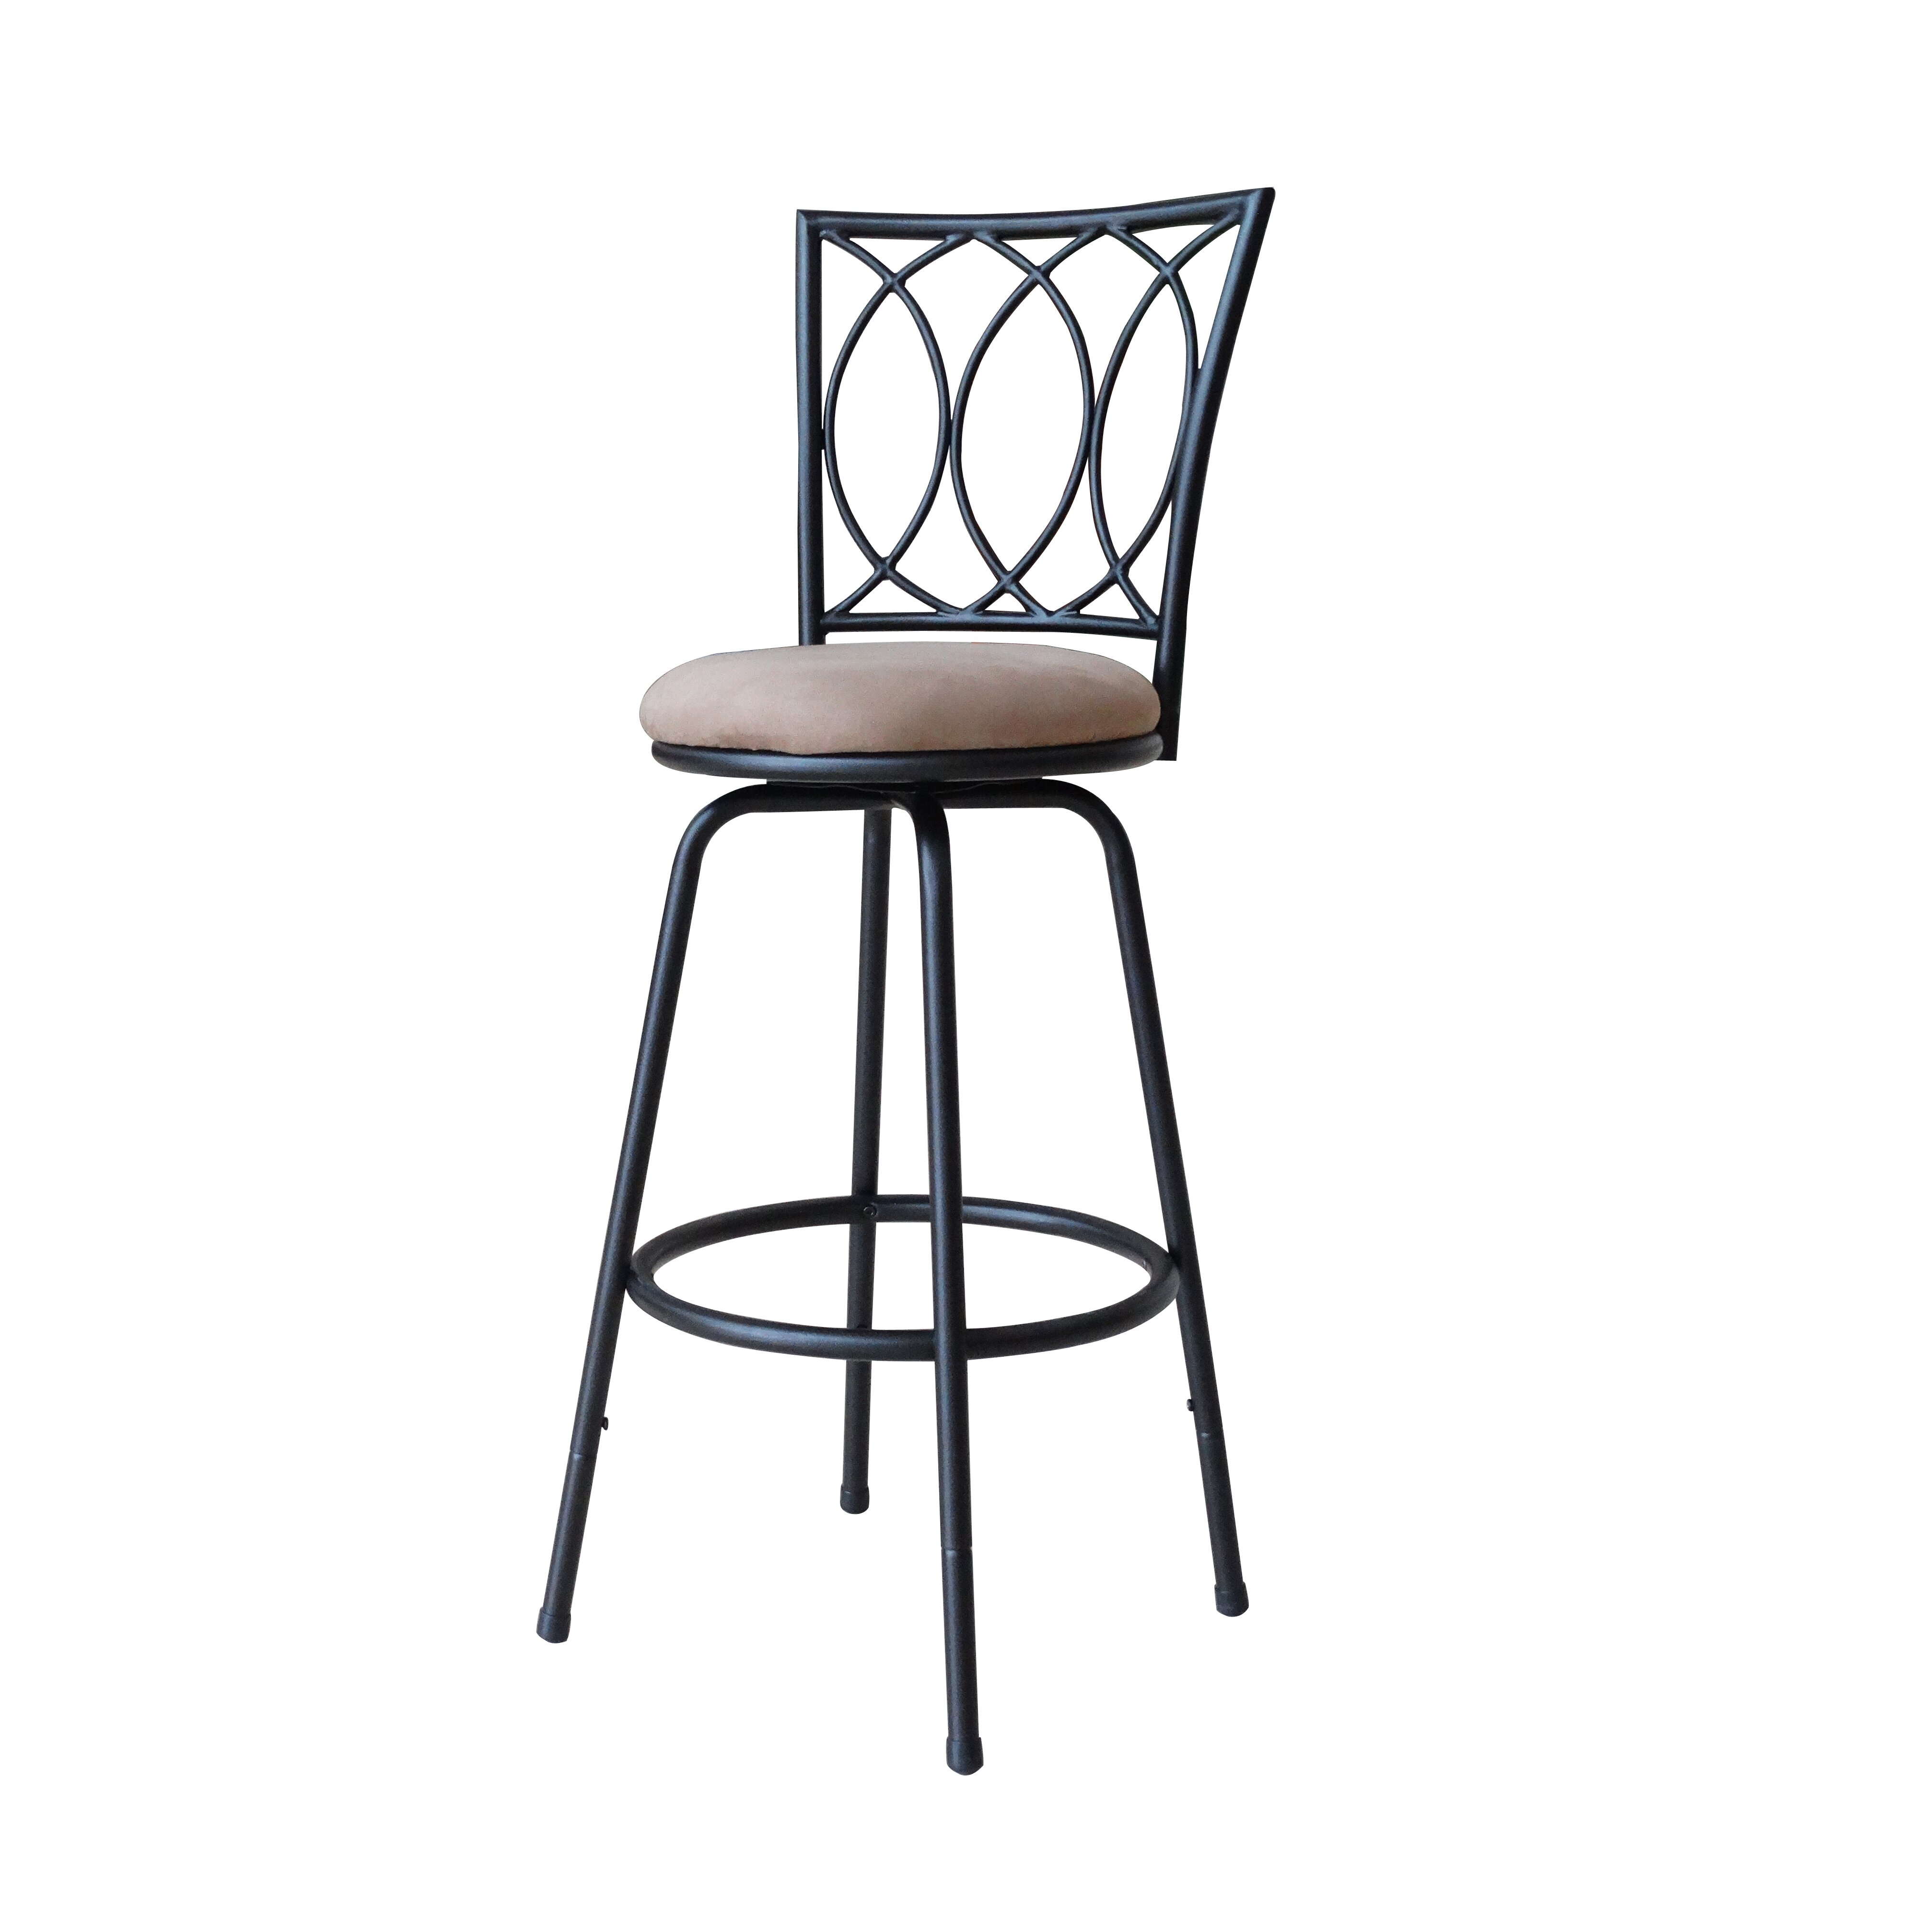 Roundhill Furniture Adjustable Height Bar Stool with  : Redico Adjustable Metal Barstool Powder Coated Brown PC036 from www.wayfair.com size 4030 x 4030 jpeg 650kB